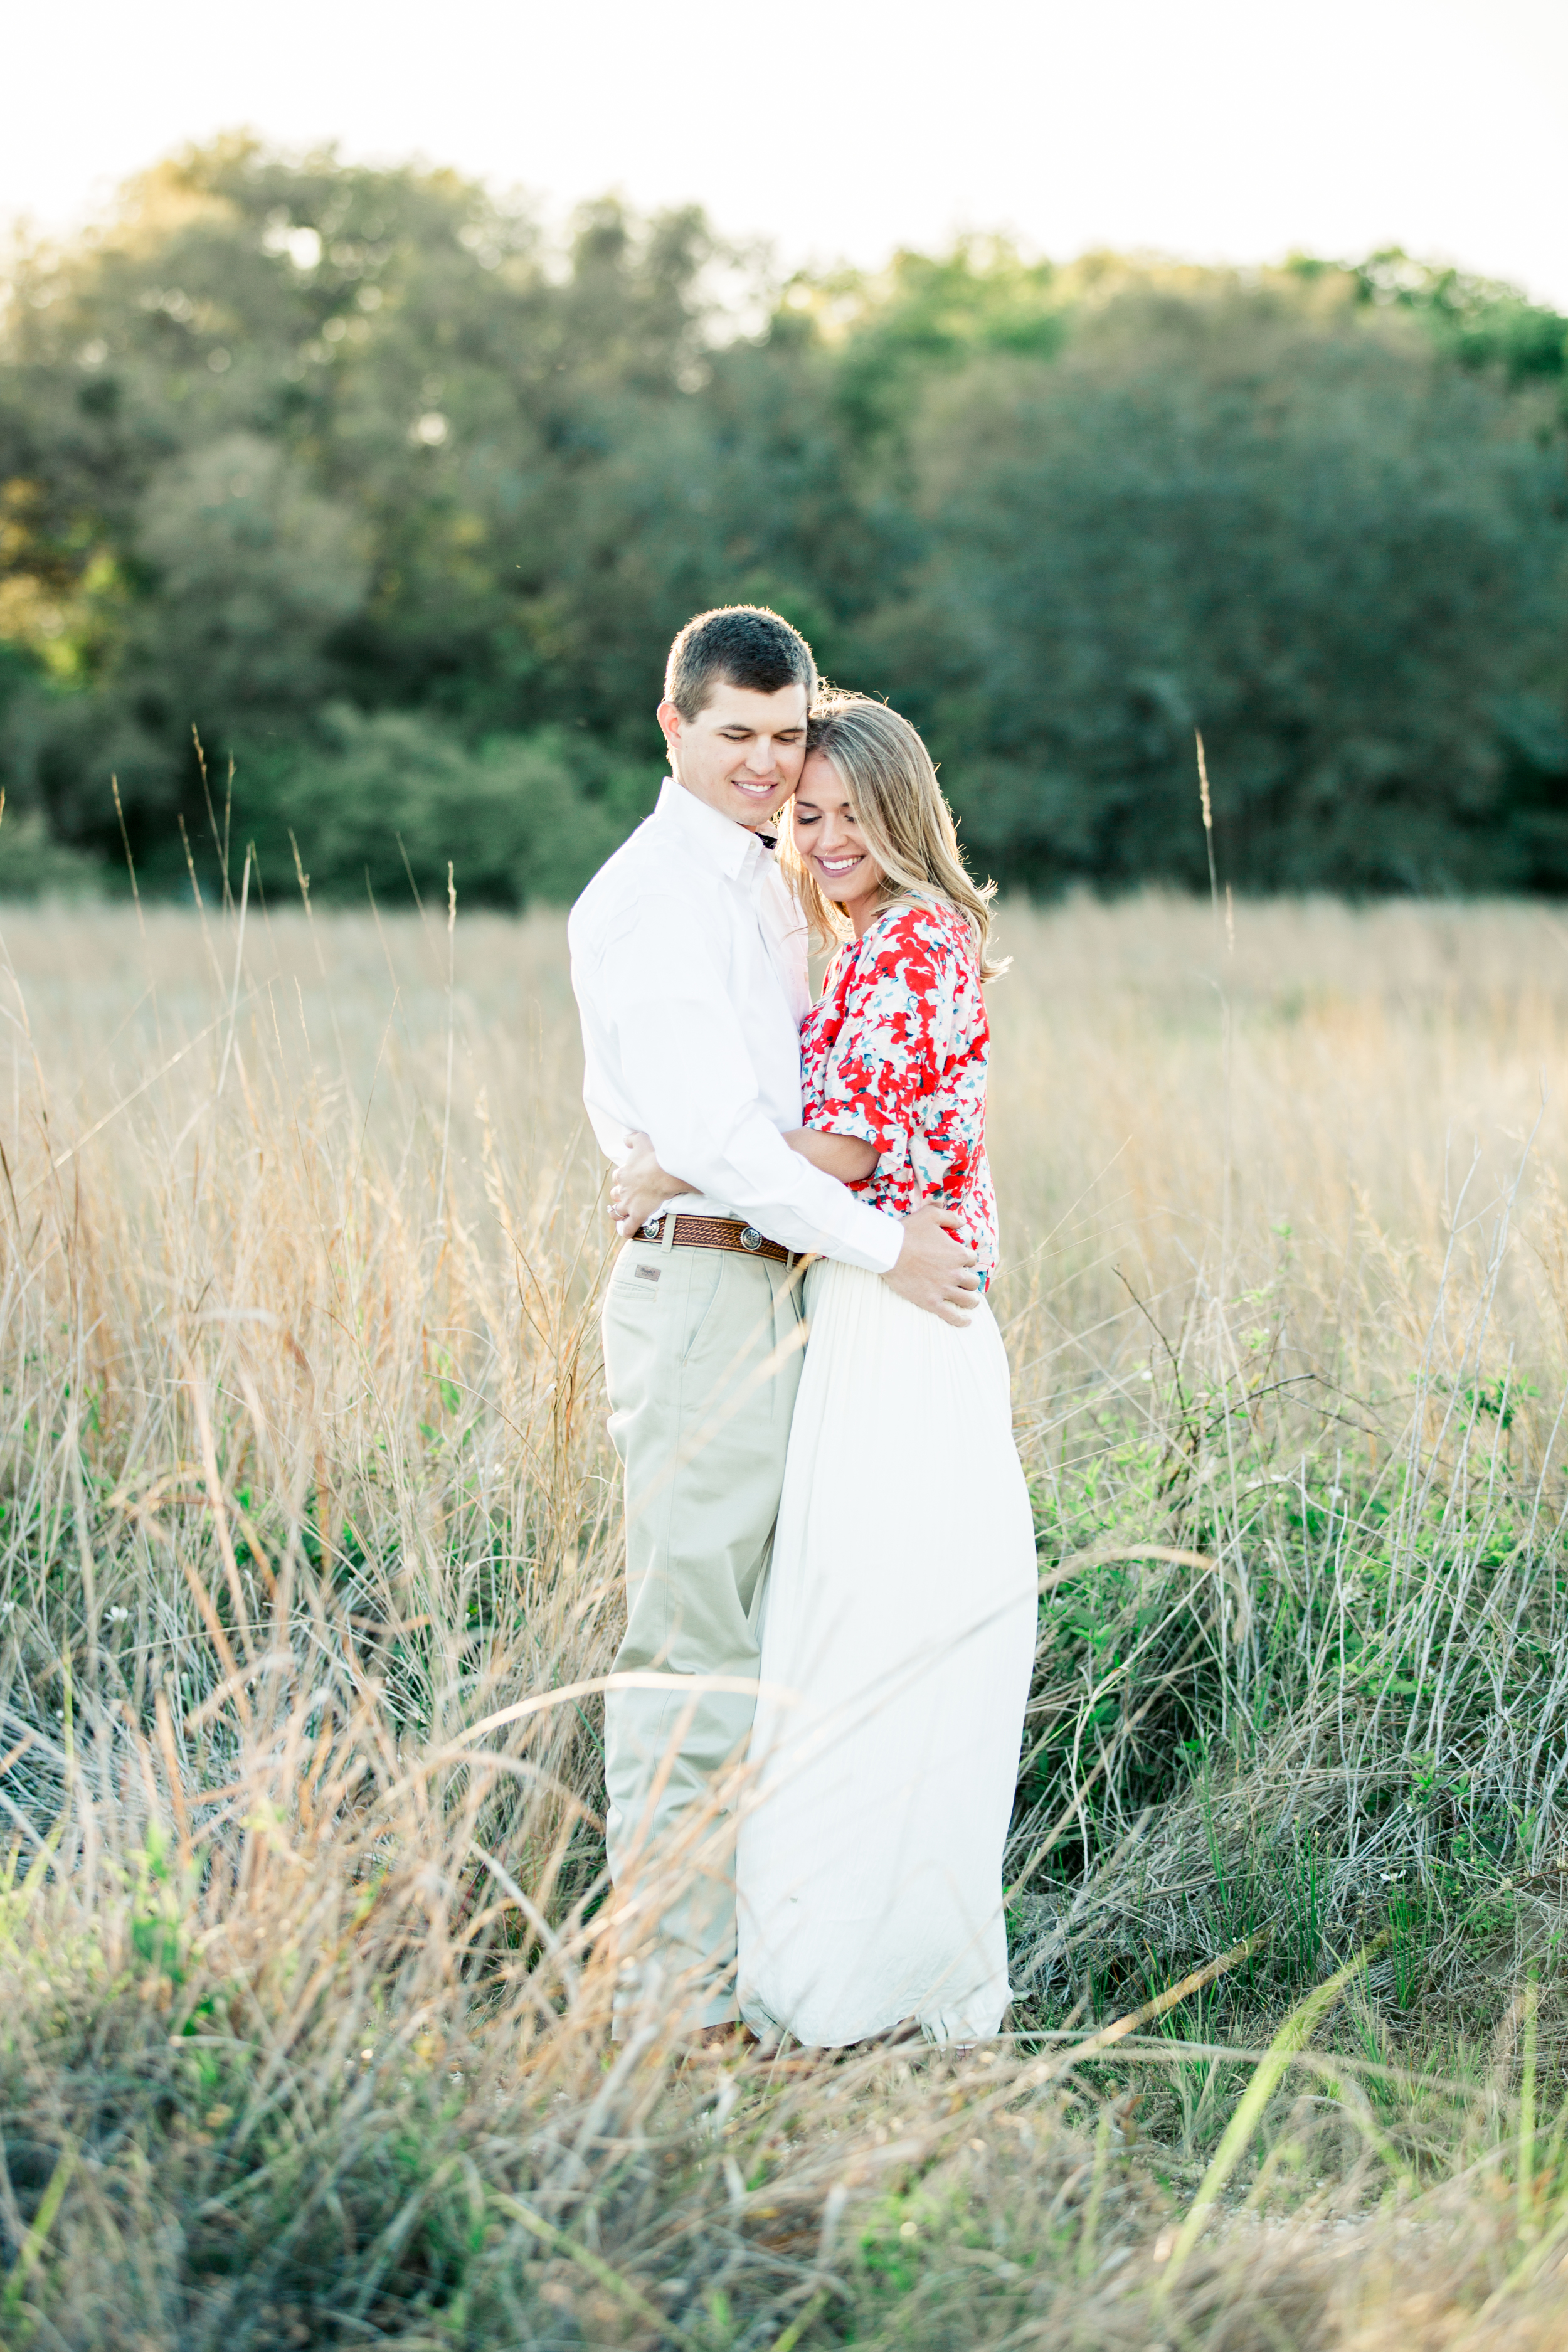 Joines_EngagementCollection-11.jpg